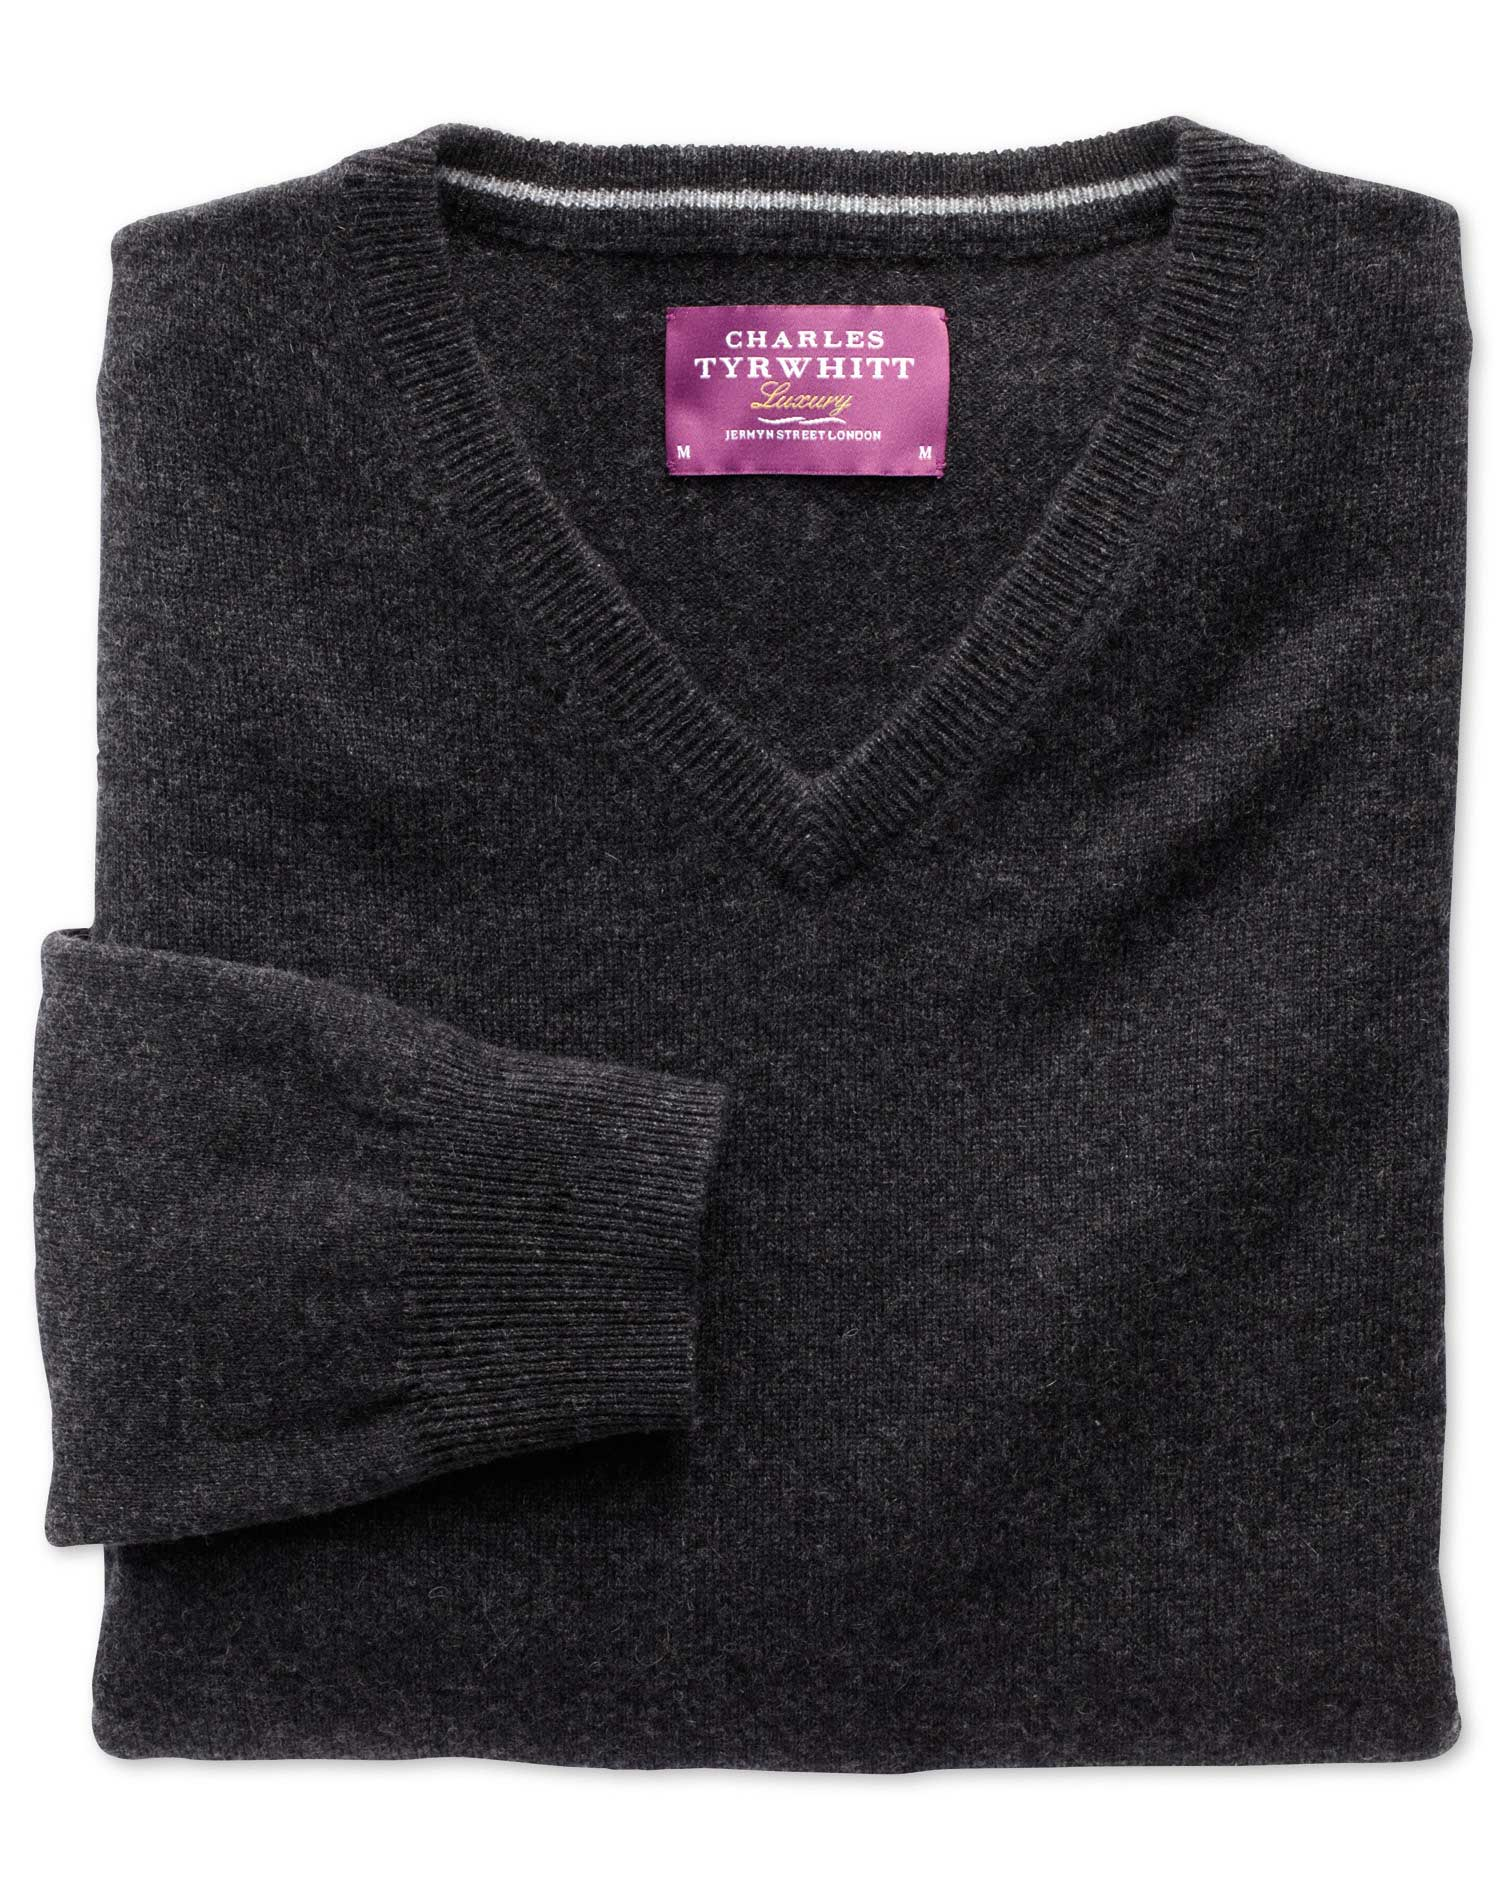 Charcoal Cashmere V-Neck Jumper Size XXXL by Charles Tyrwhitt